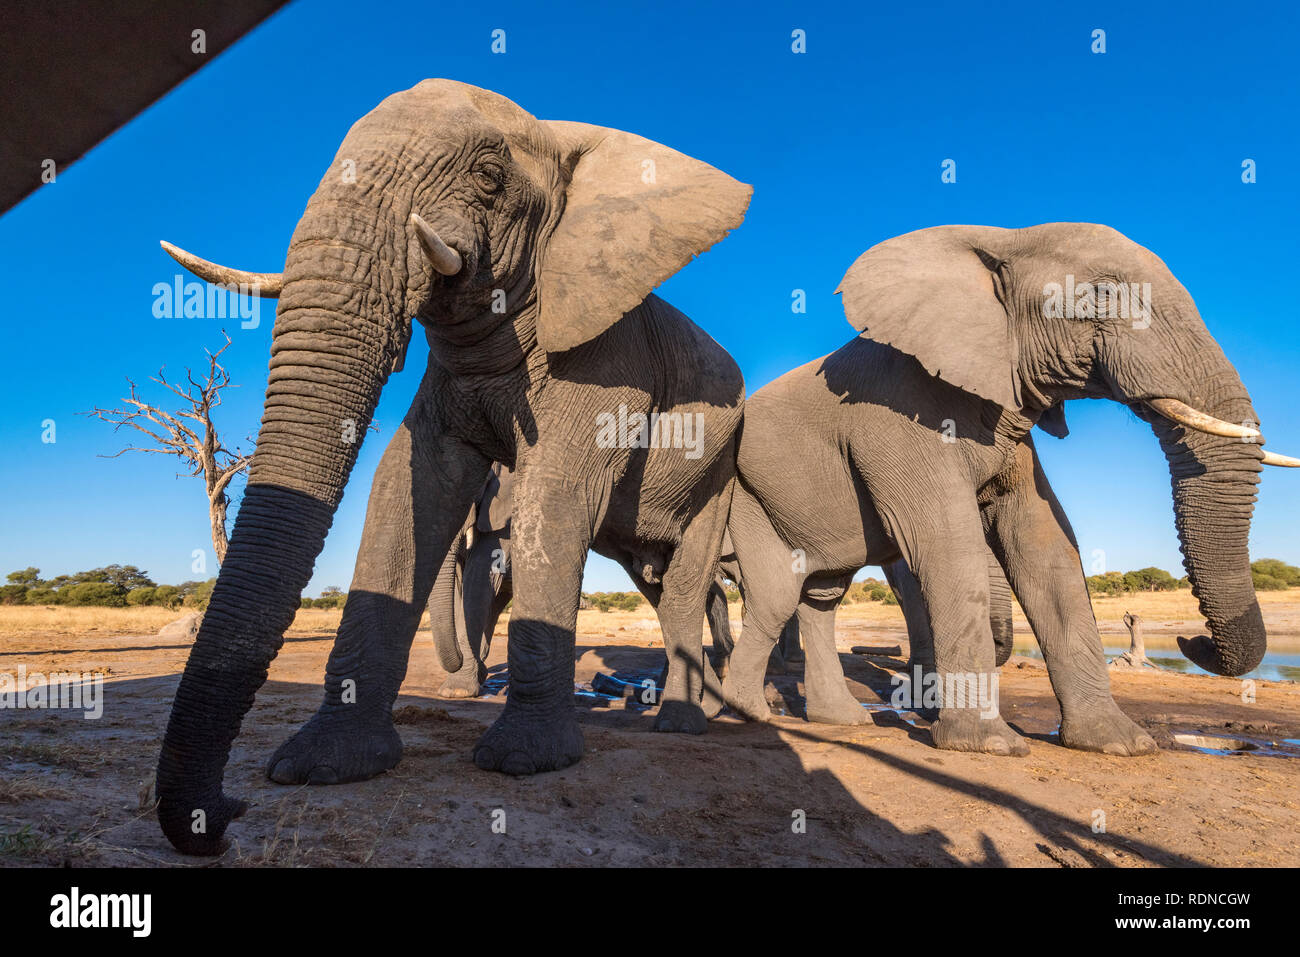 African elephant seen from a undertground hide in Zimbabwe's Hwange National Park. Stock Photo